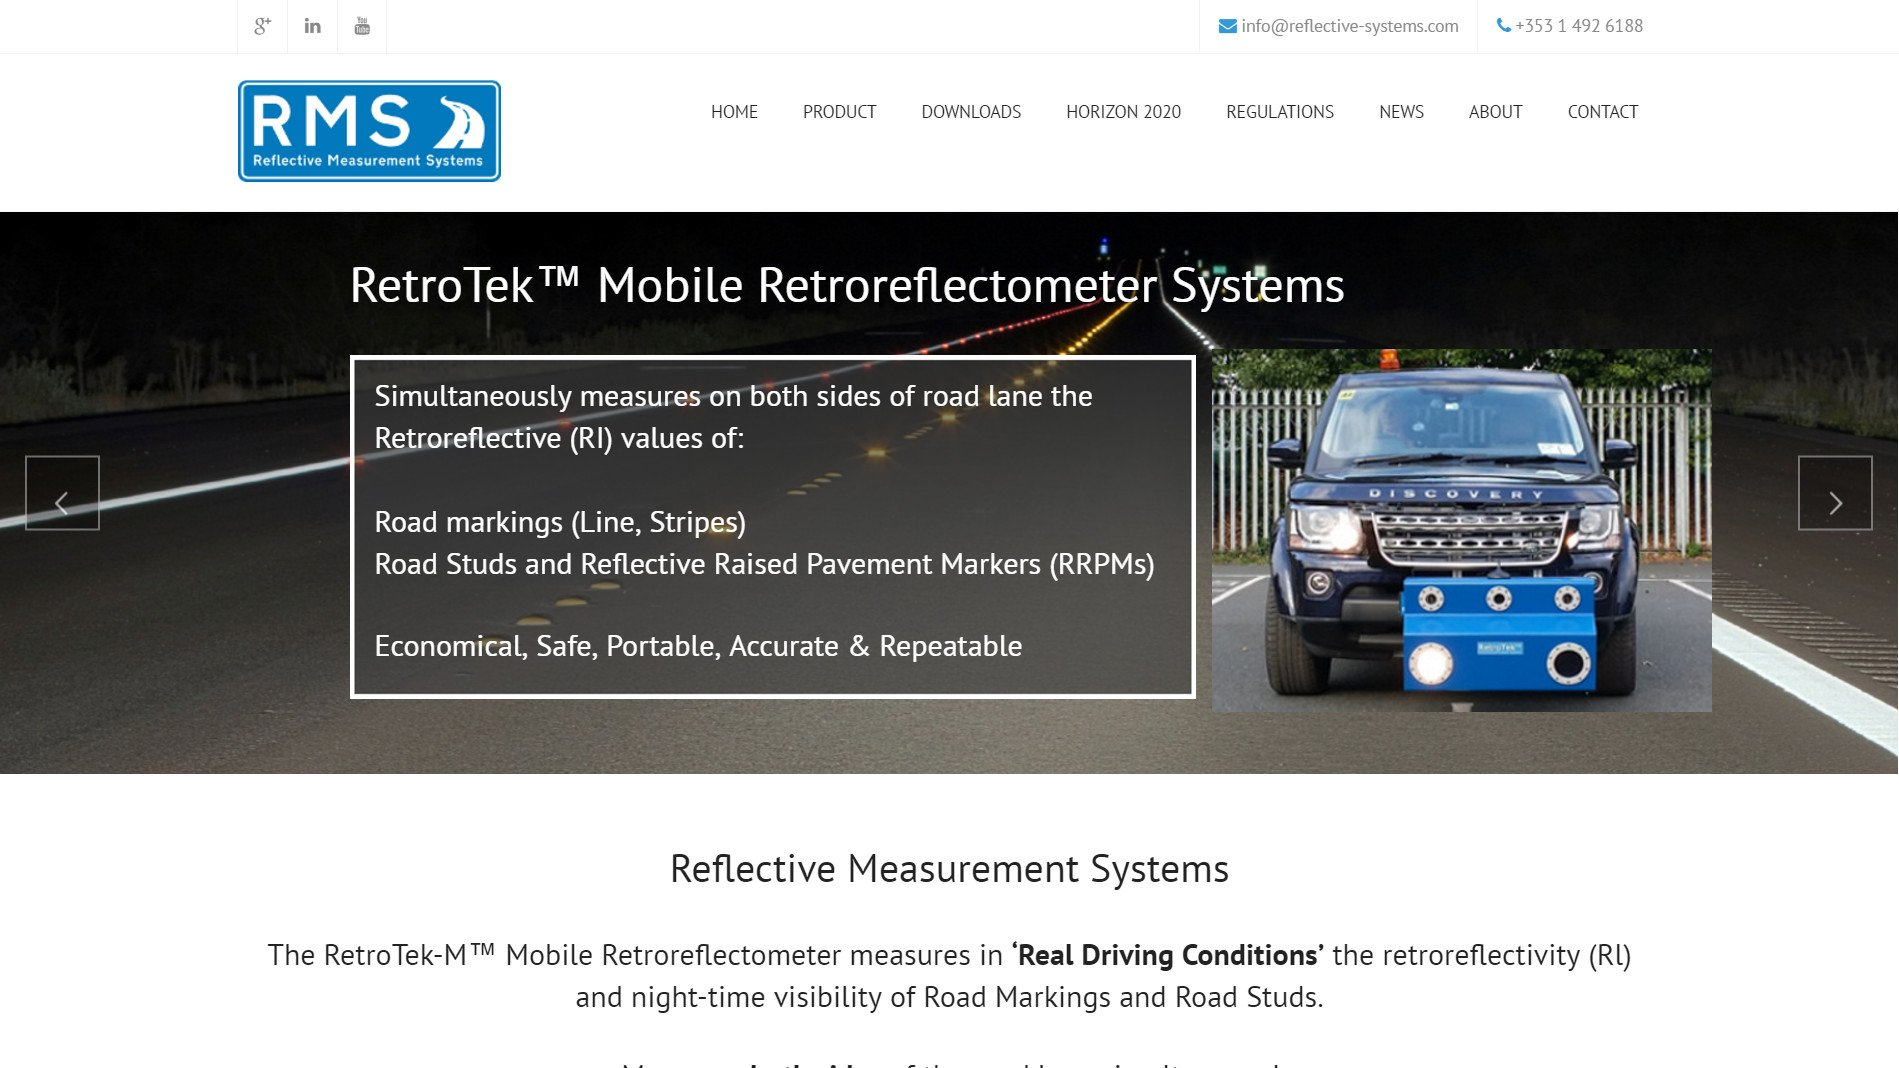 Website design for RMS design by Ridge Design home page visual featured image